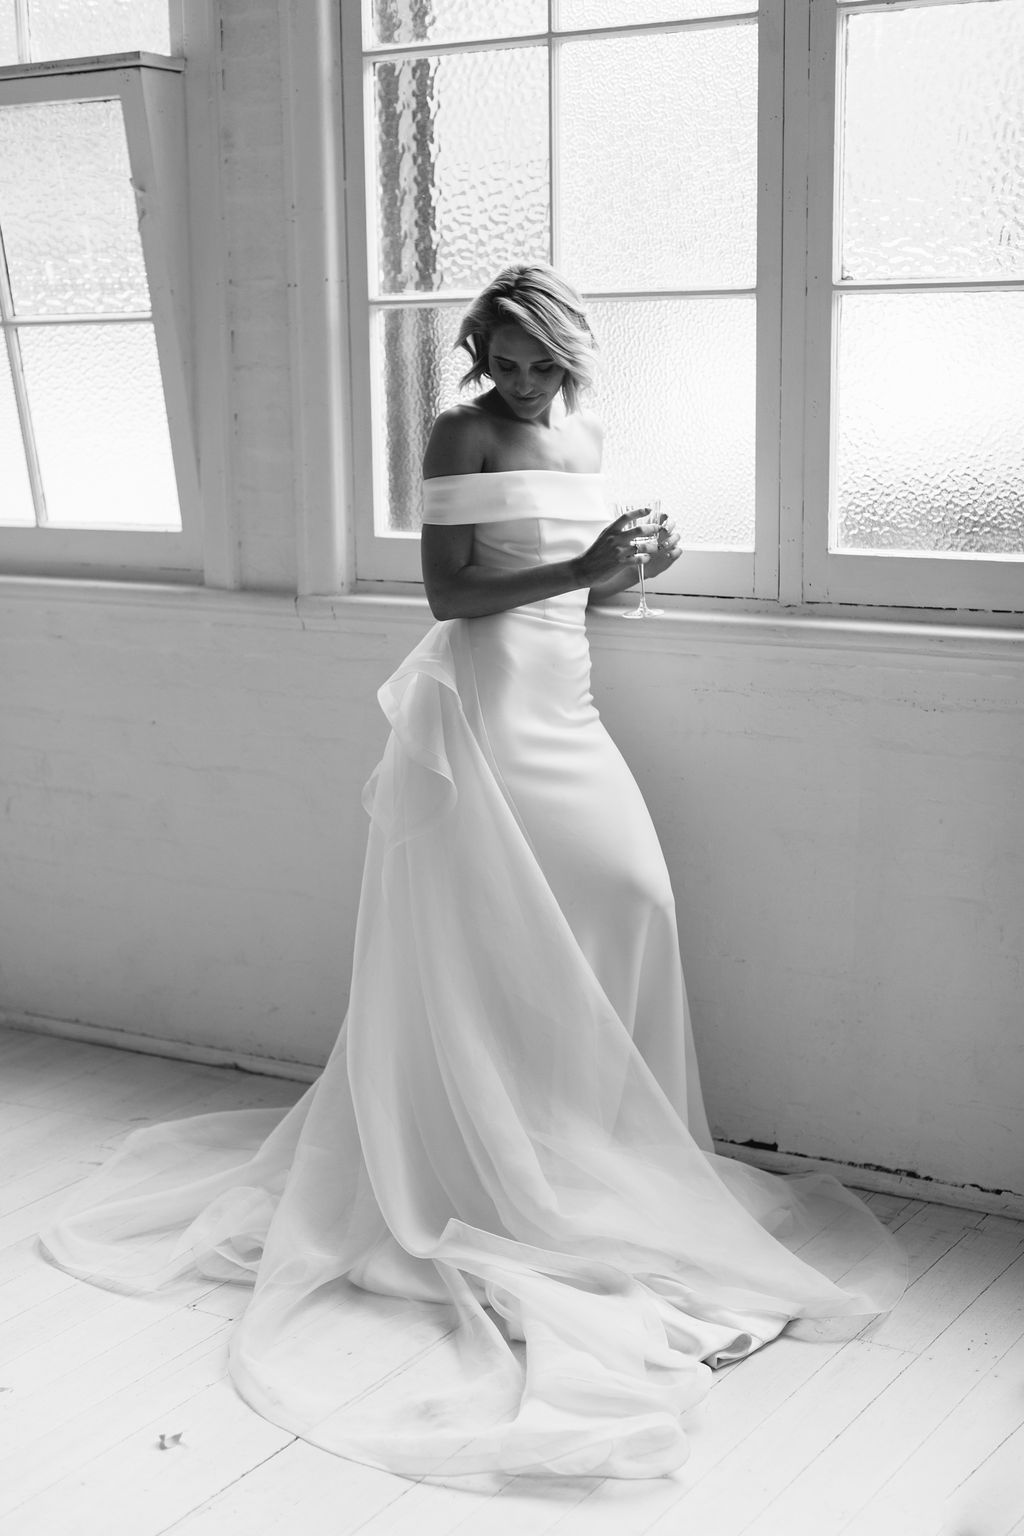 Perfect Bride before wedding drinking champagne in artdeco windows with large tulle train on floor for Amelie George Jewellery Campaign